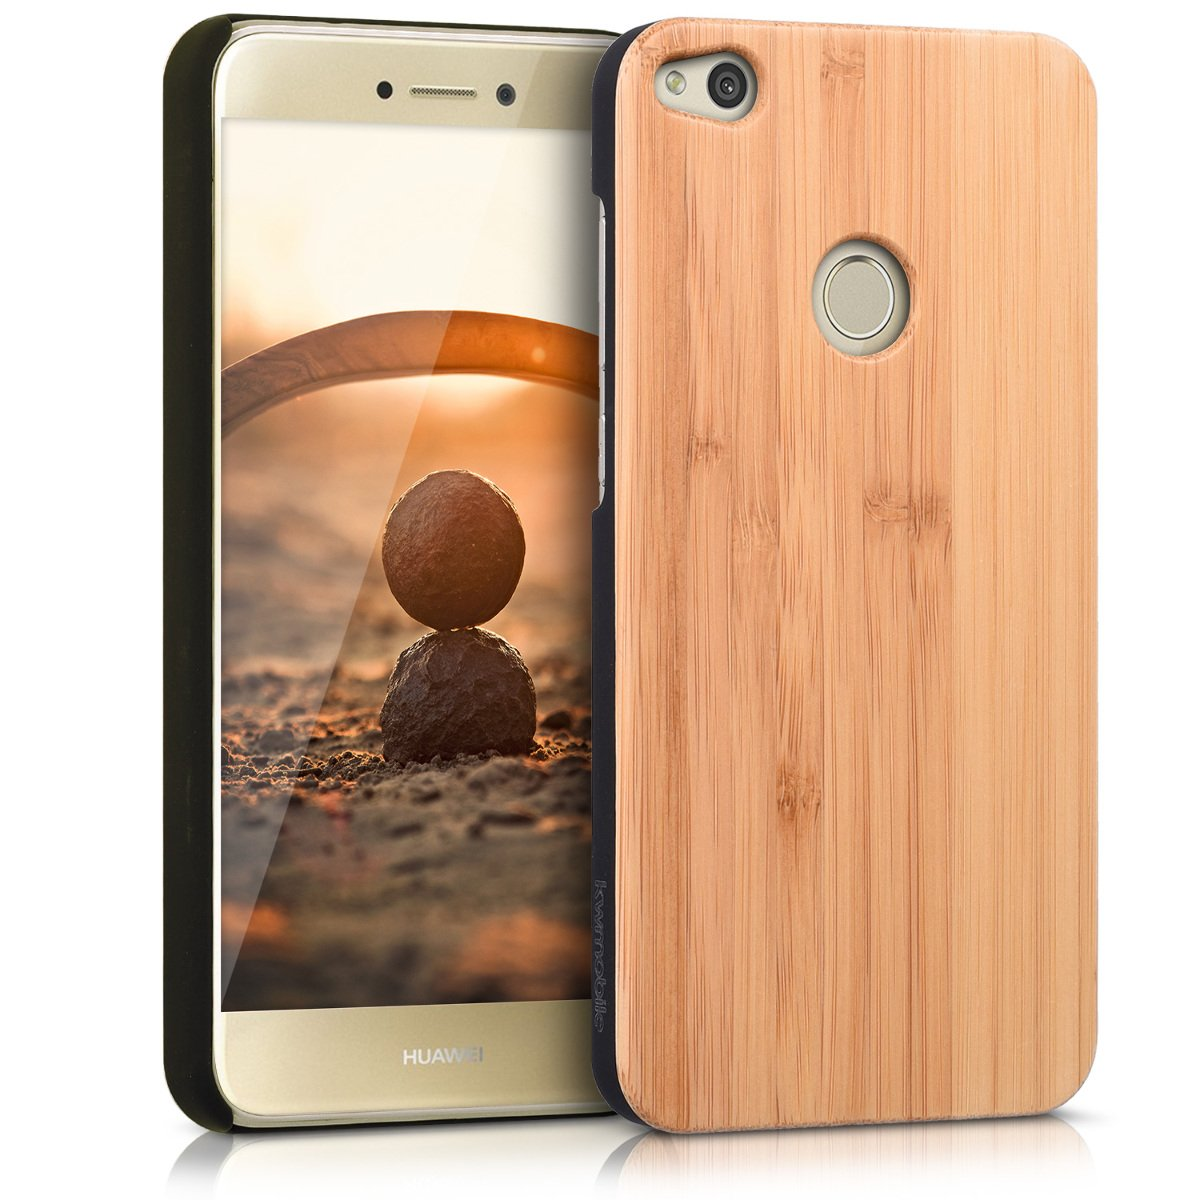 Amazon.com: kwmobile Huawei P8 Lite (2017) Wood Case - Non ...